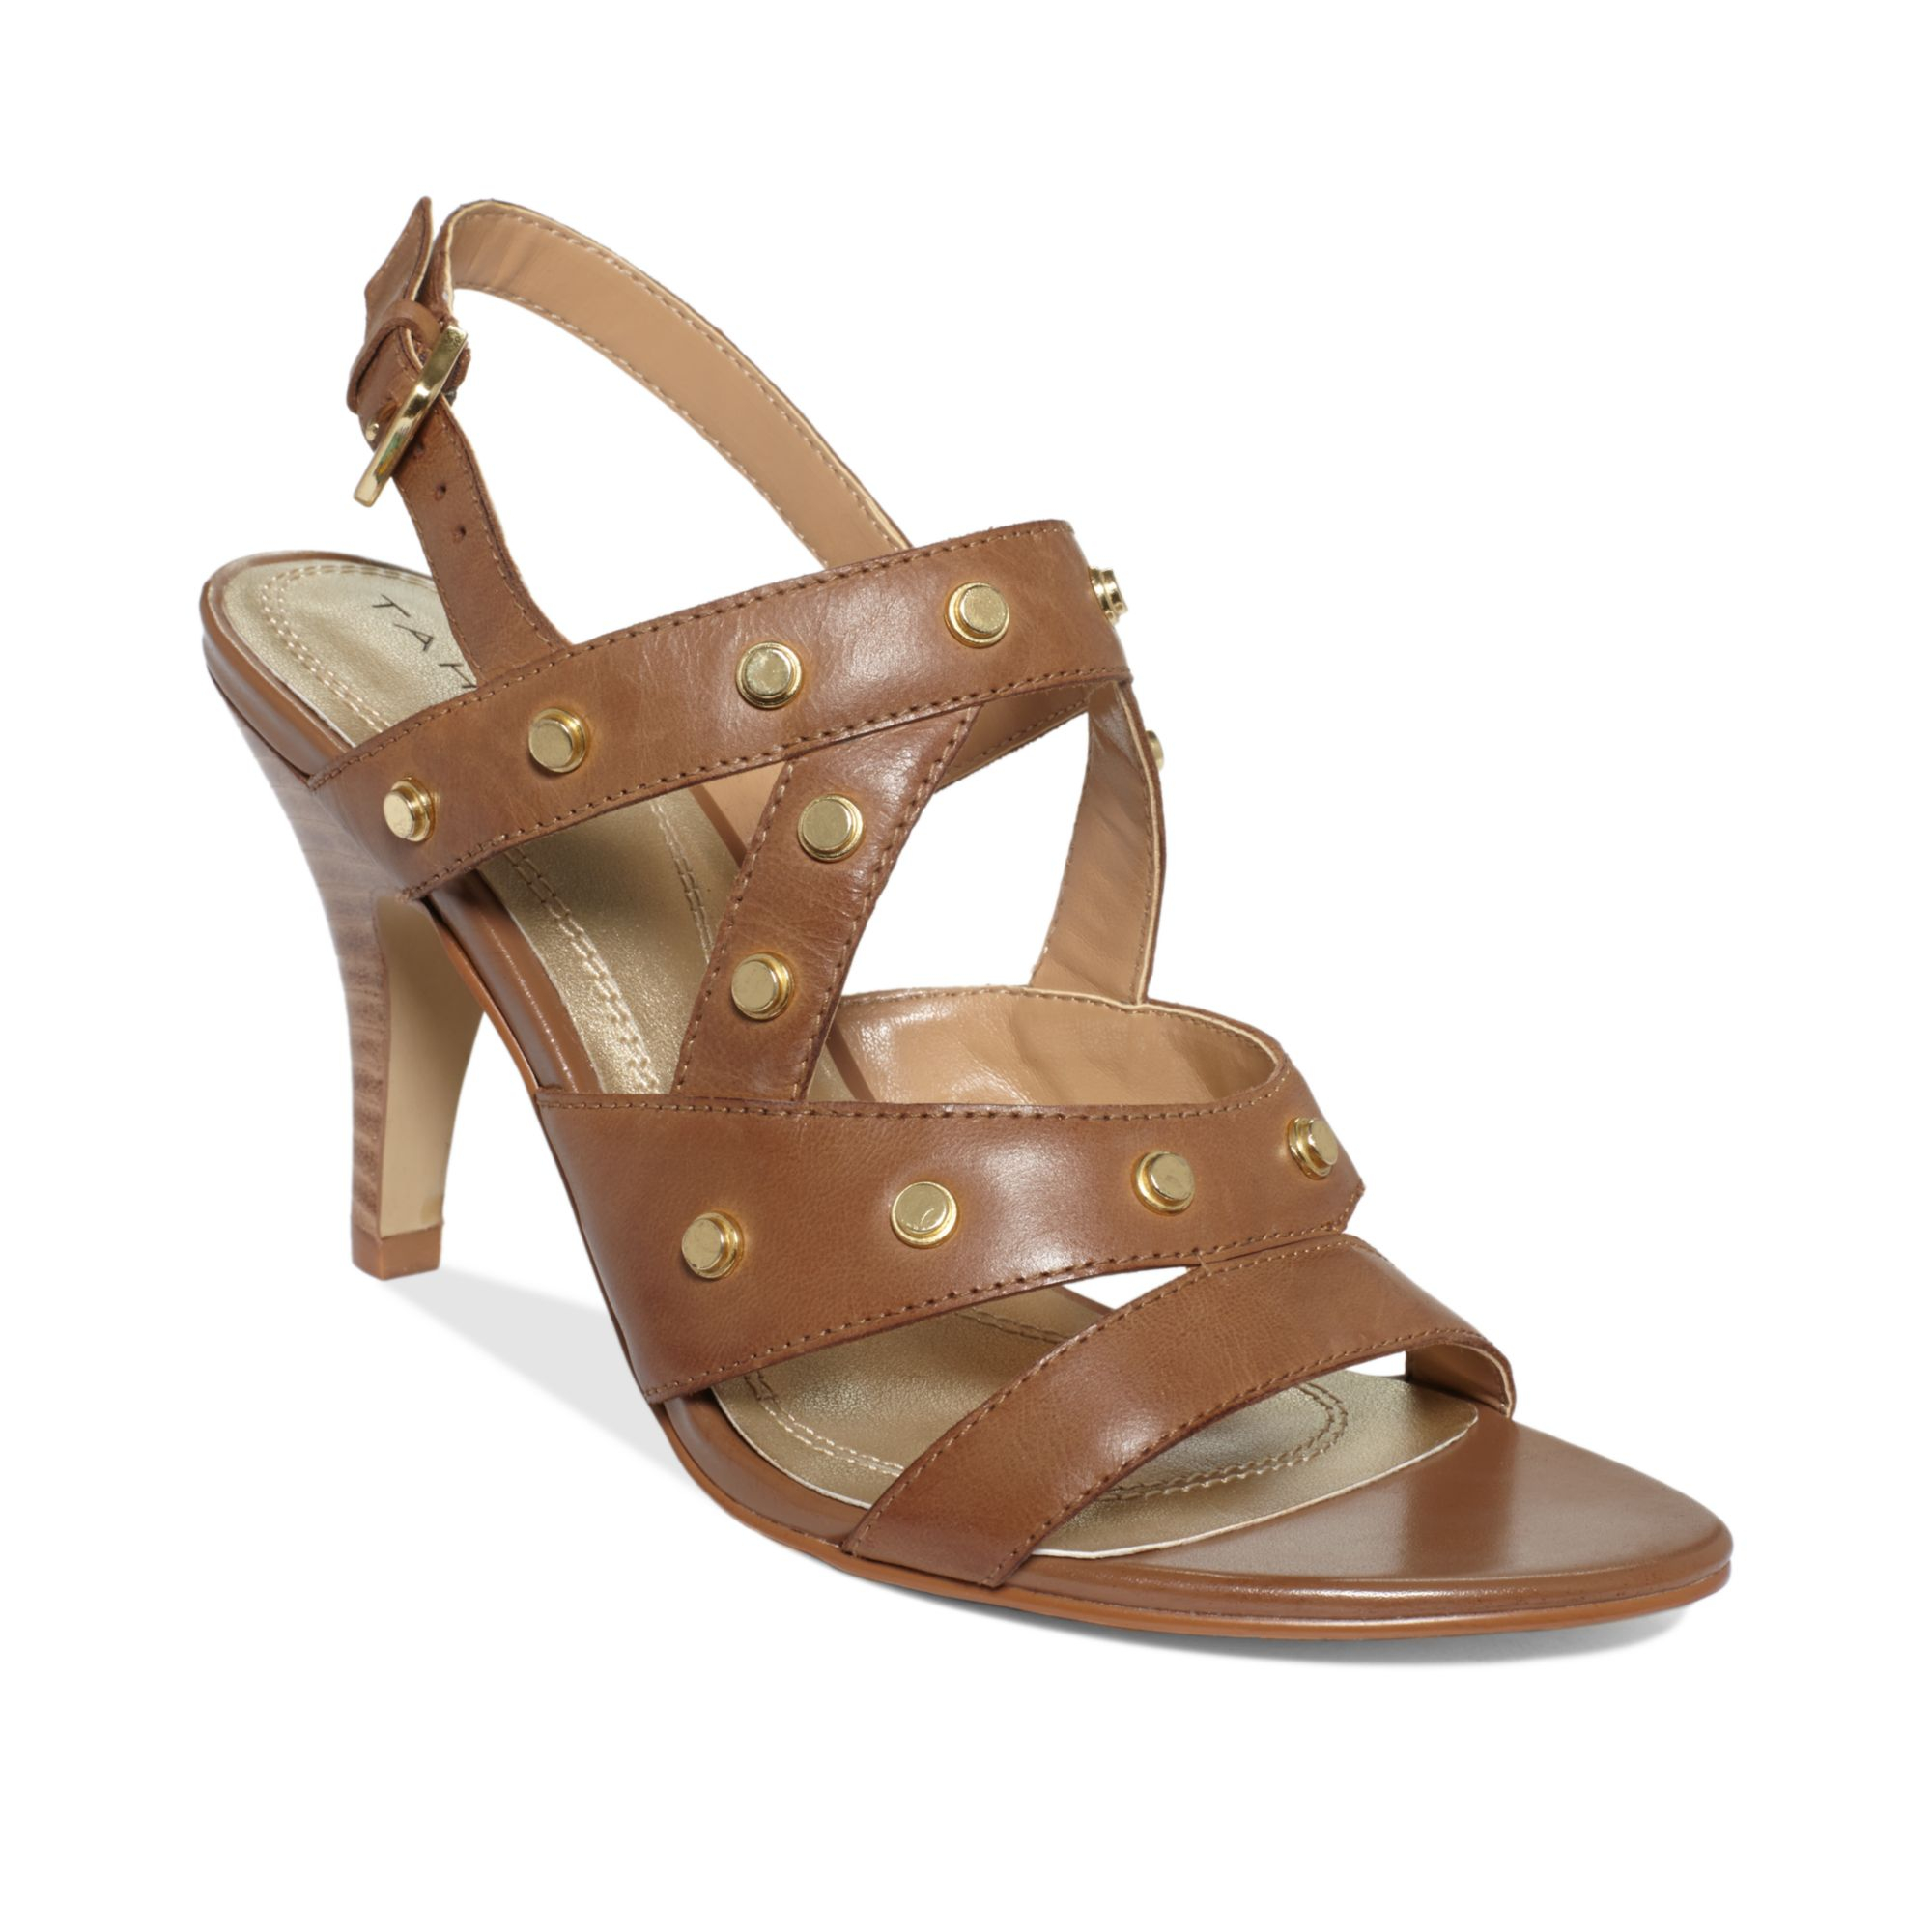 Lyst Tahari Womens Claire Mid Heel Sandals In Brown